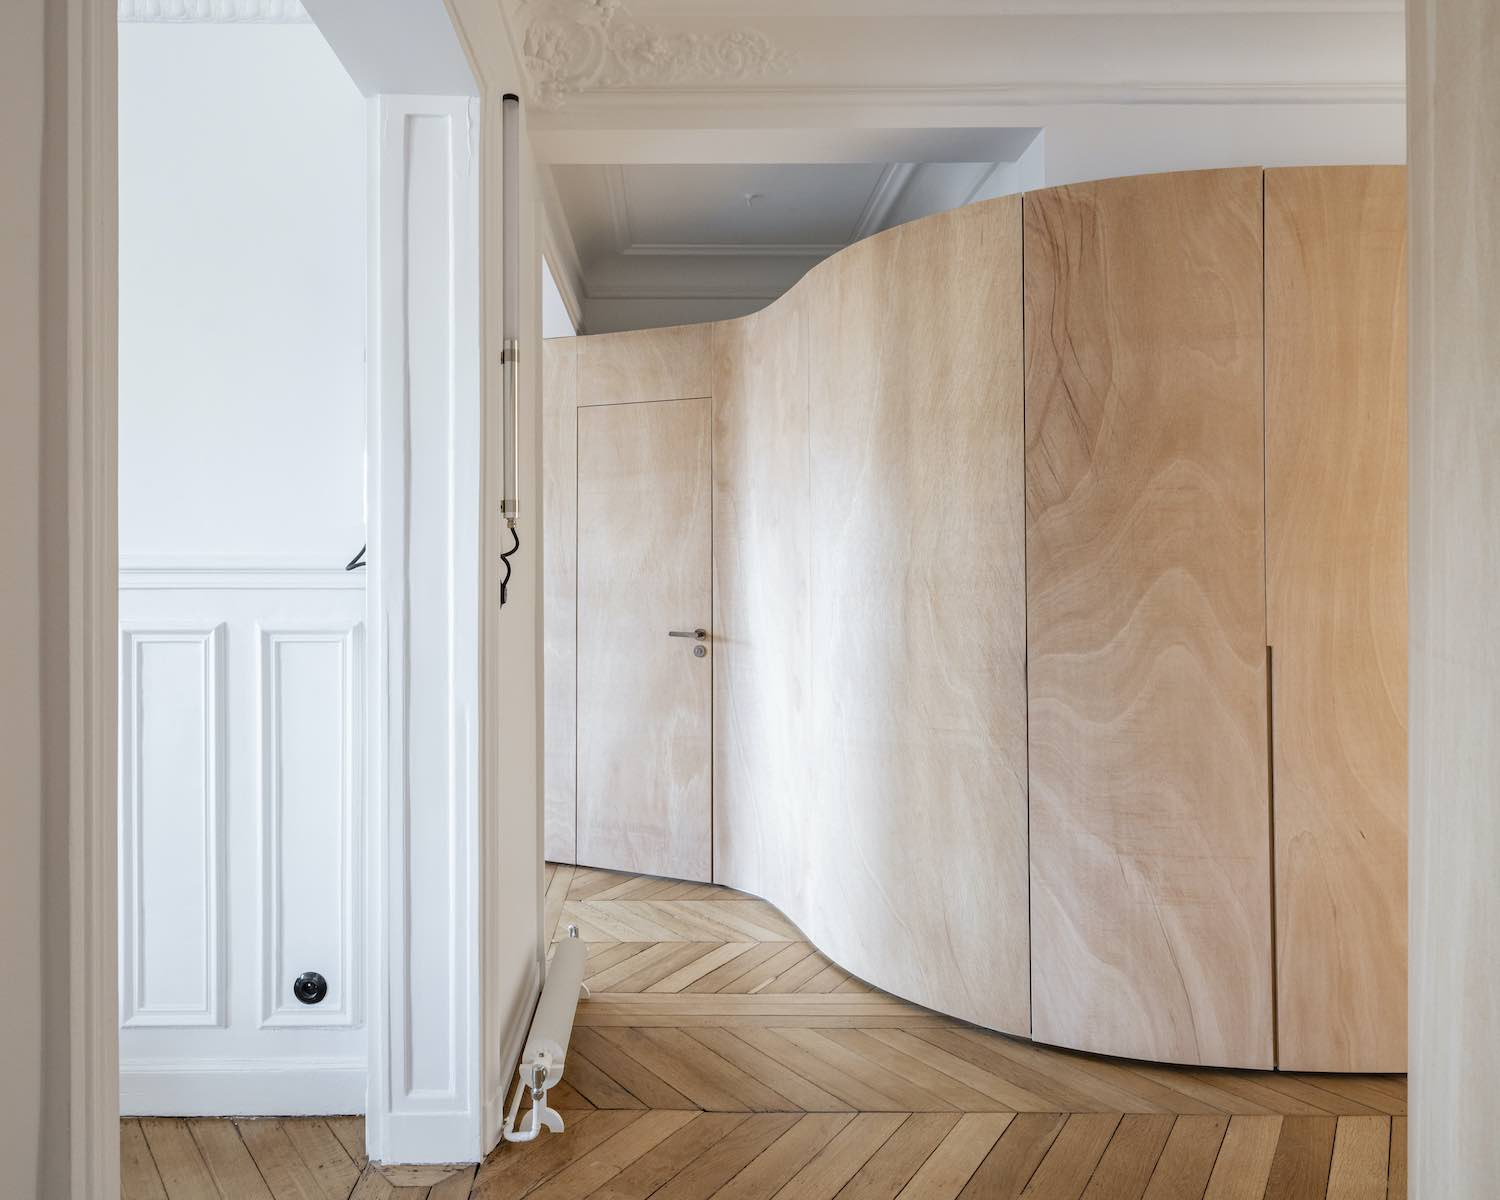 Wooden curvy wall installed inside apartment